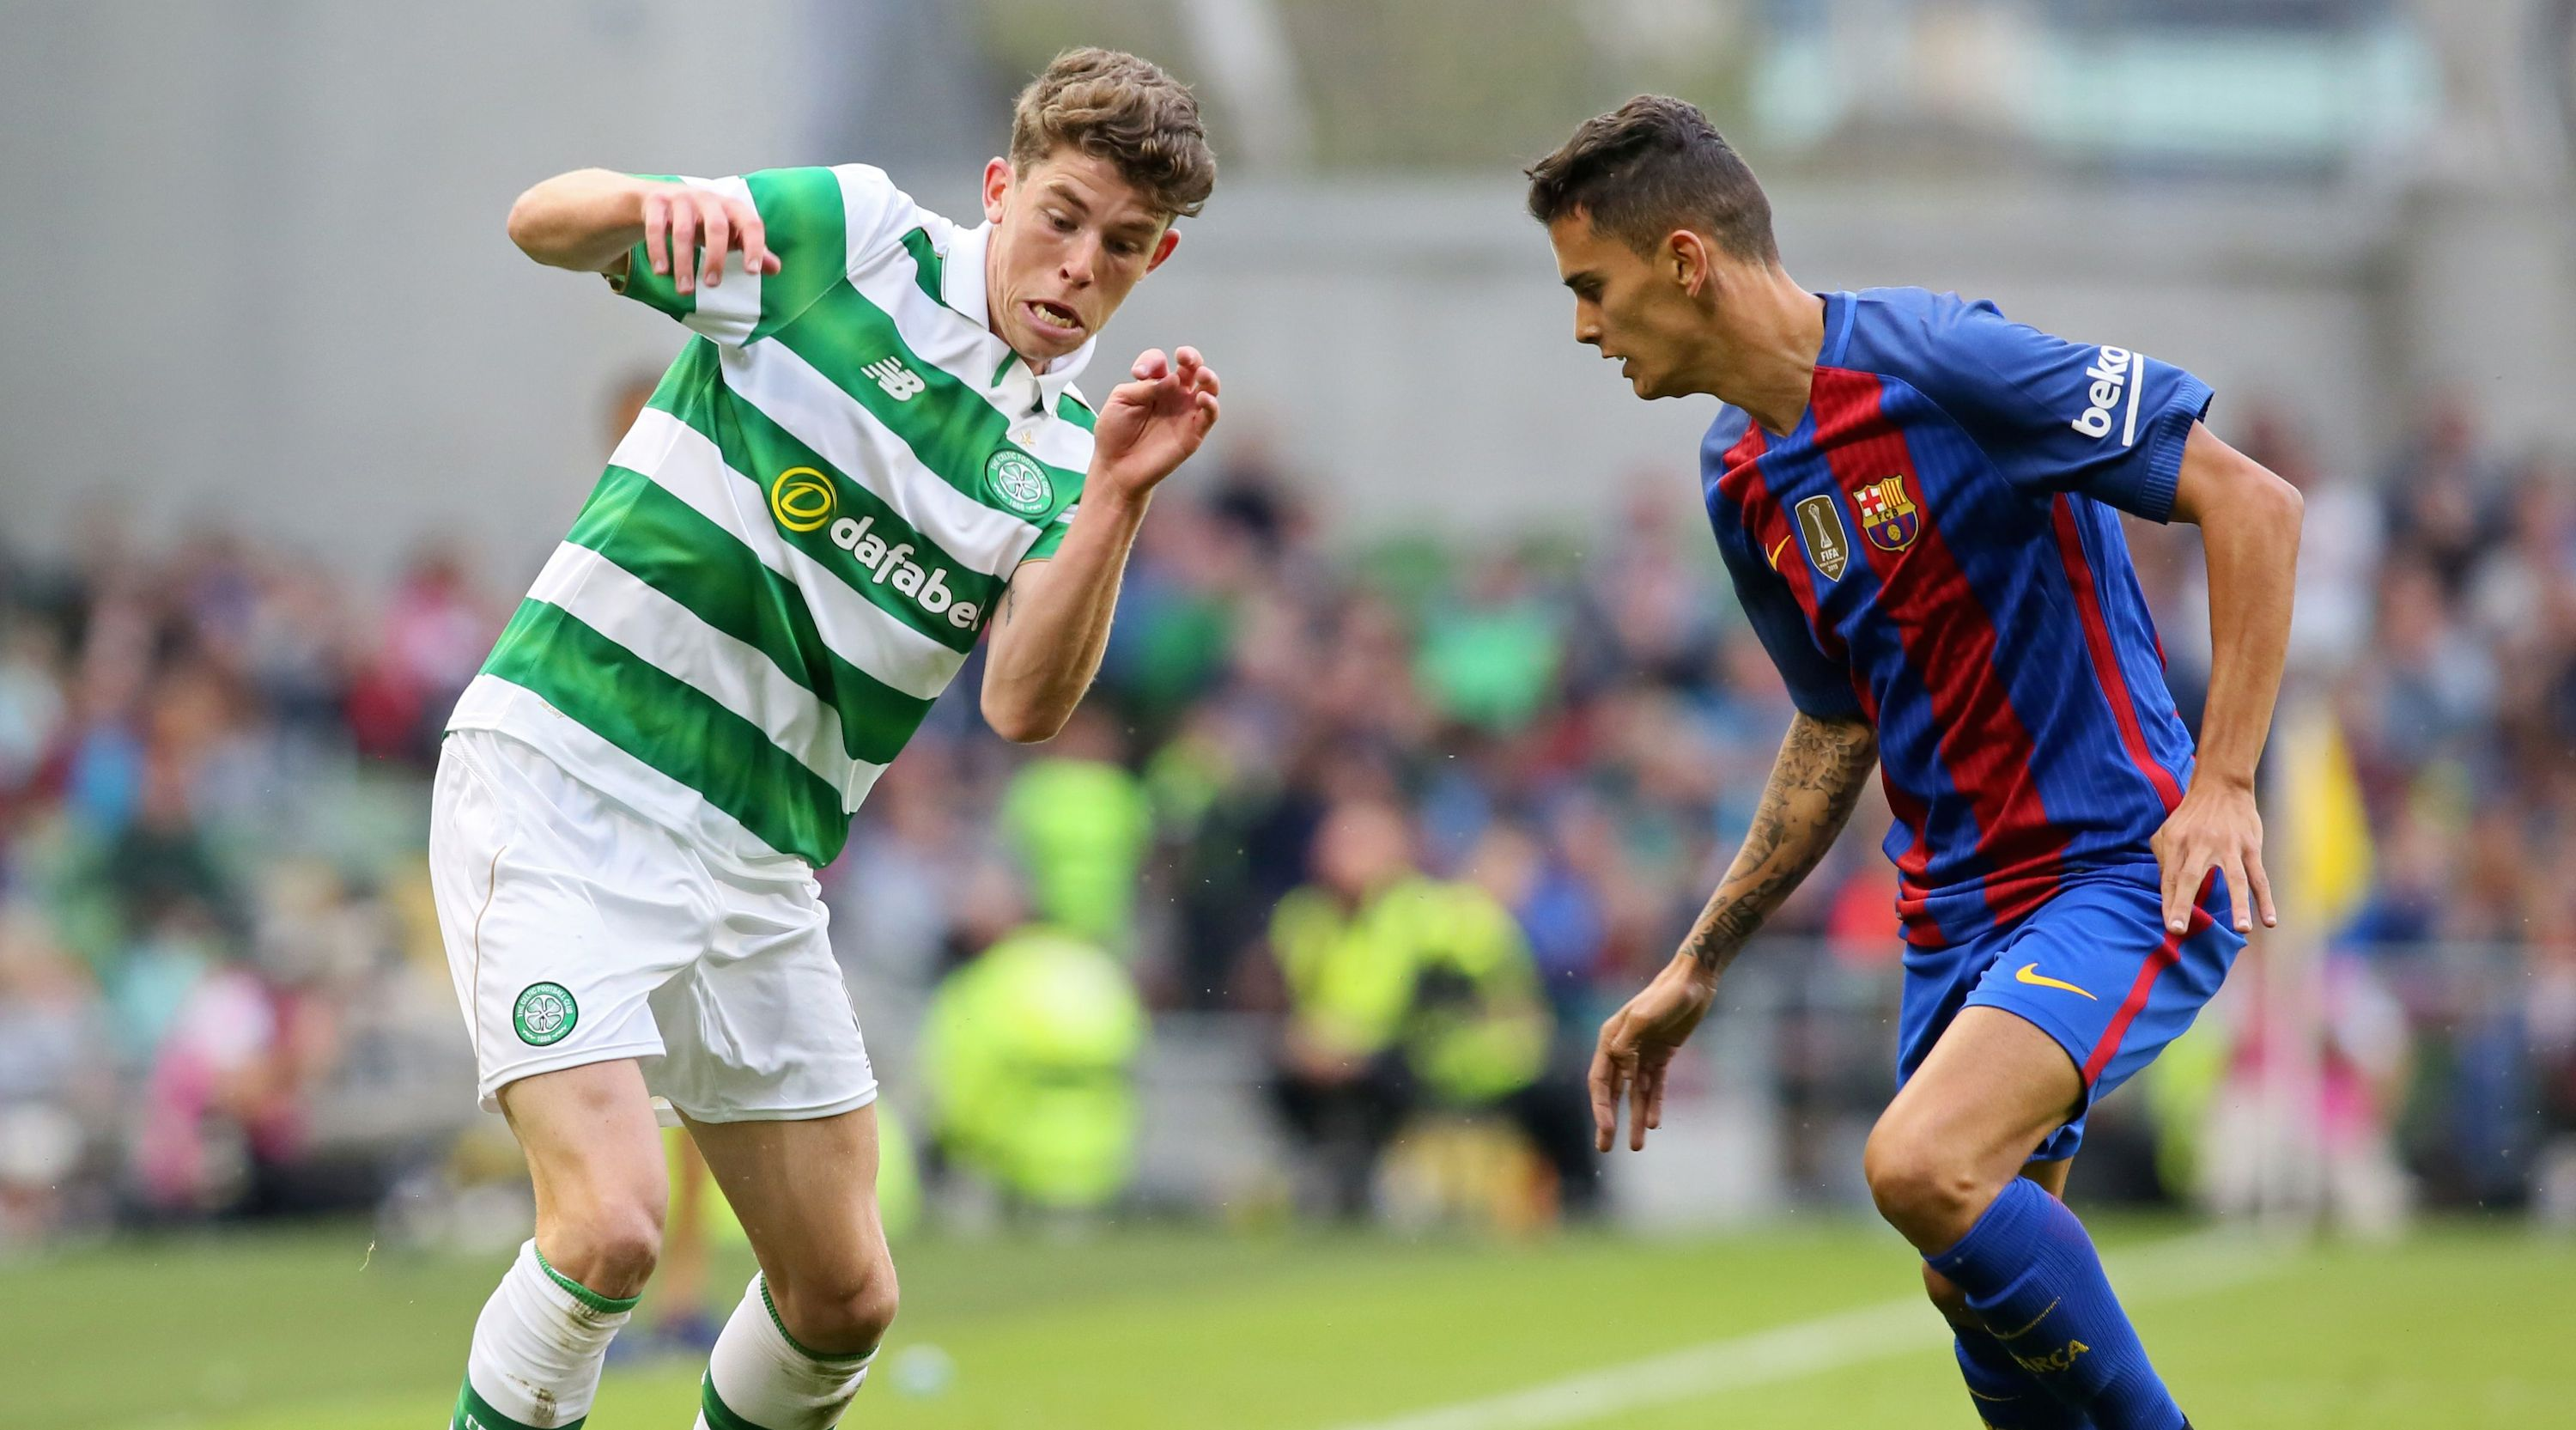 Celtic's Scottish midfielder Ryan Christie vies with Barcelona's Spanish defender Nili (R) during the pre-season International Champions Cup football match between Spanish champions, Barcelona and Scottish Premiership champions, Celtic at the Aviva Stadium in Dublin on July 30, 2016.